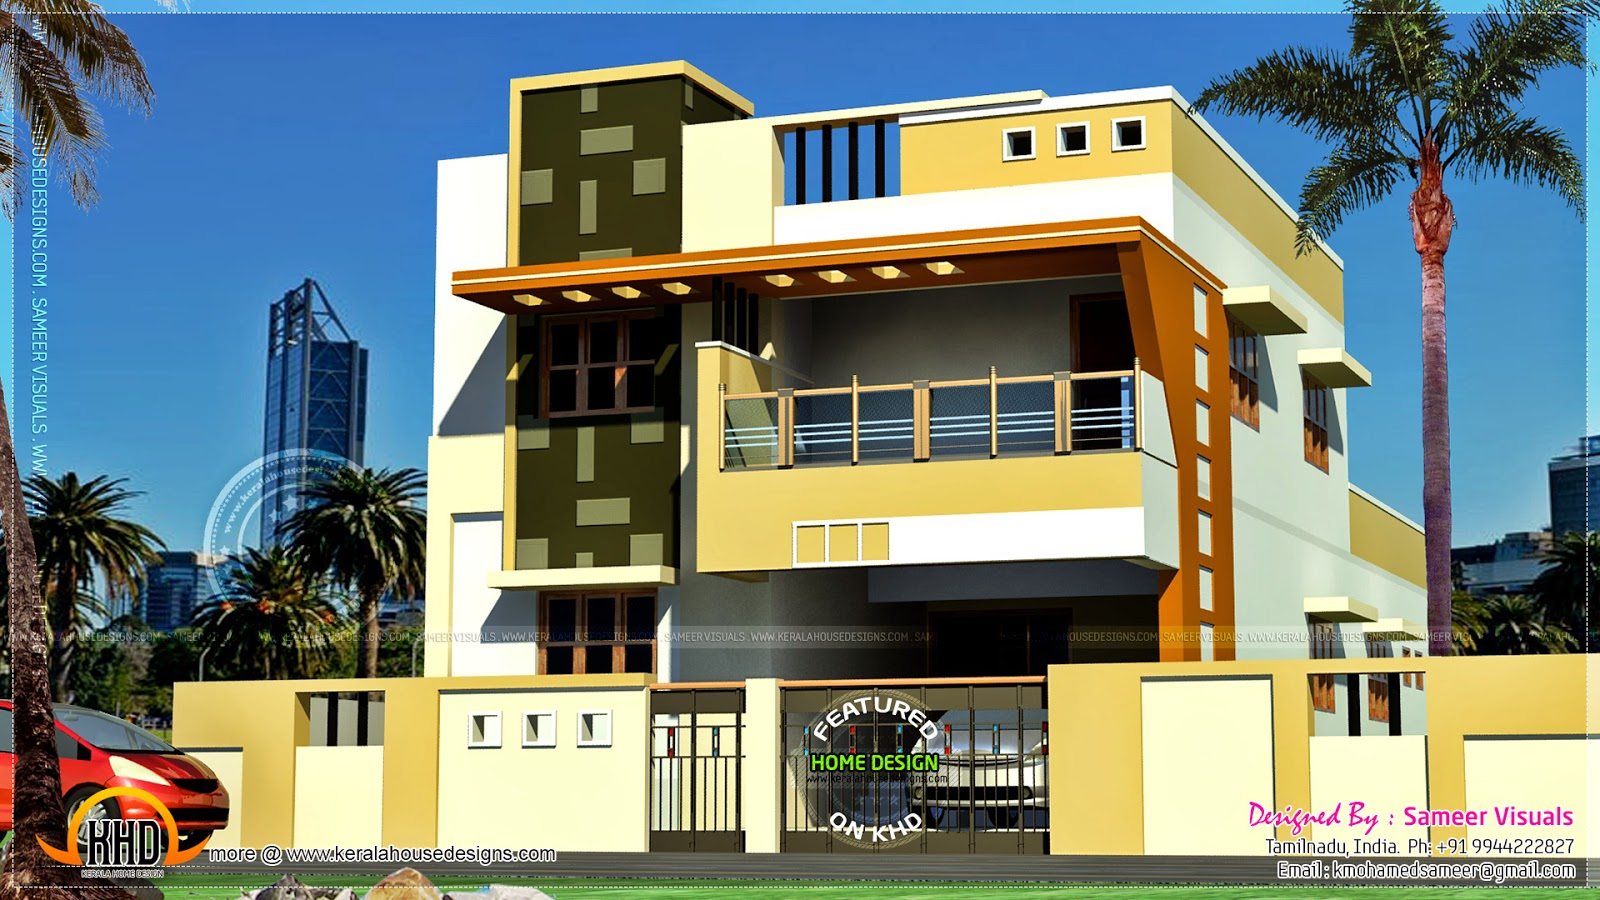 Modern south indian house design kerala home design and for South indian small house designs